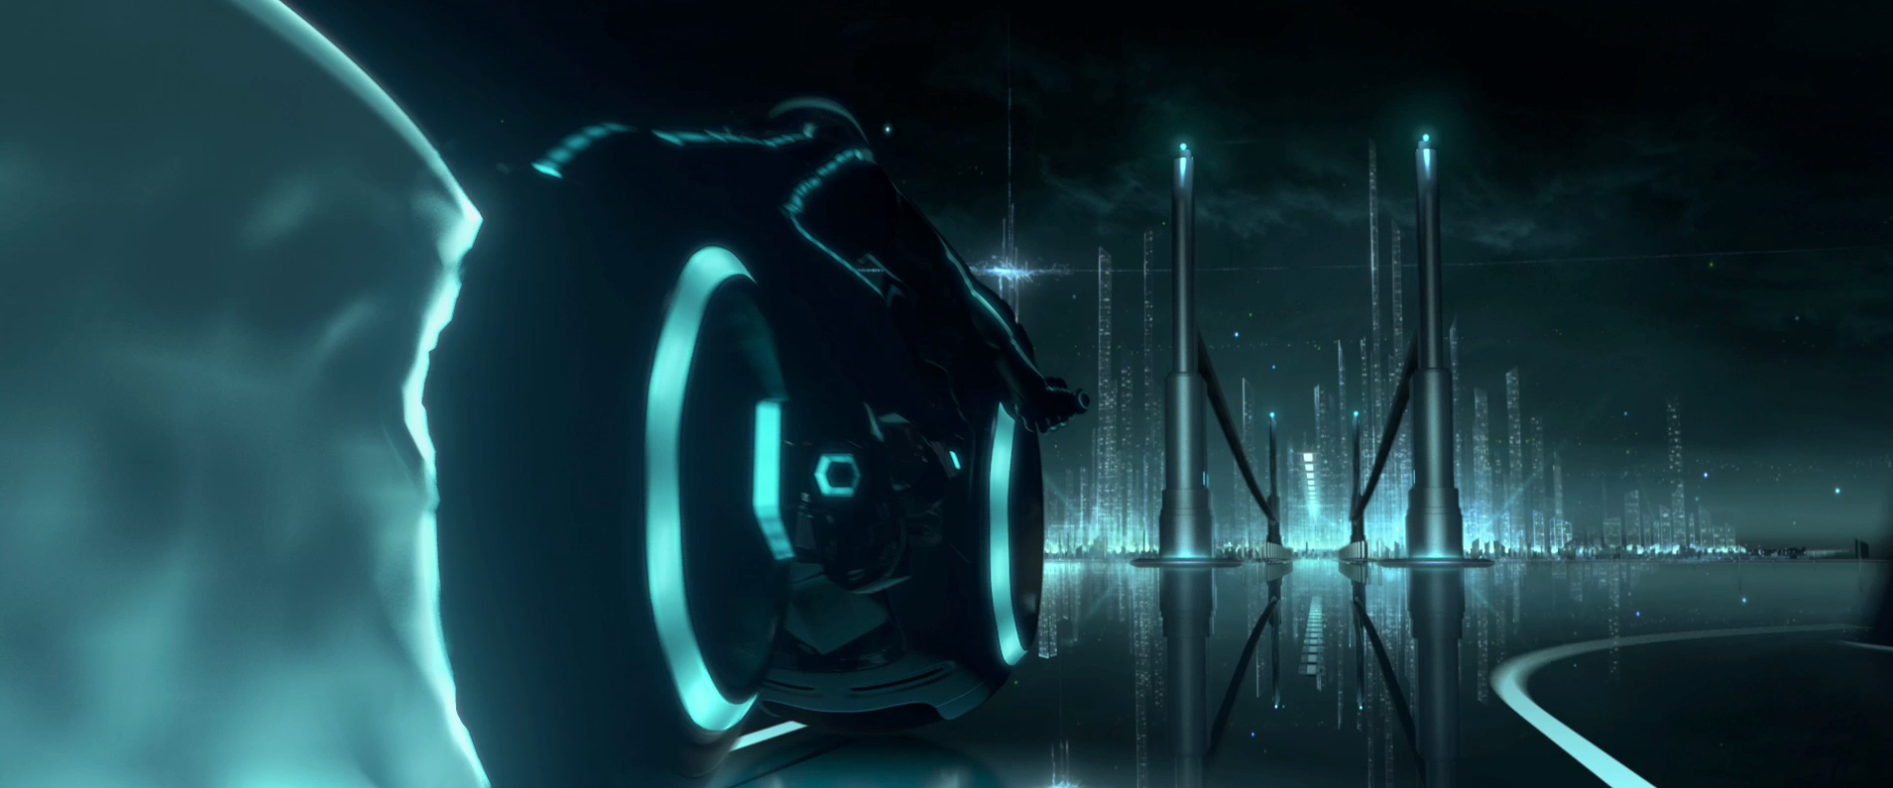 Tron Legacy Backgrounds Group (80+)